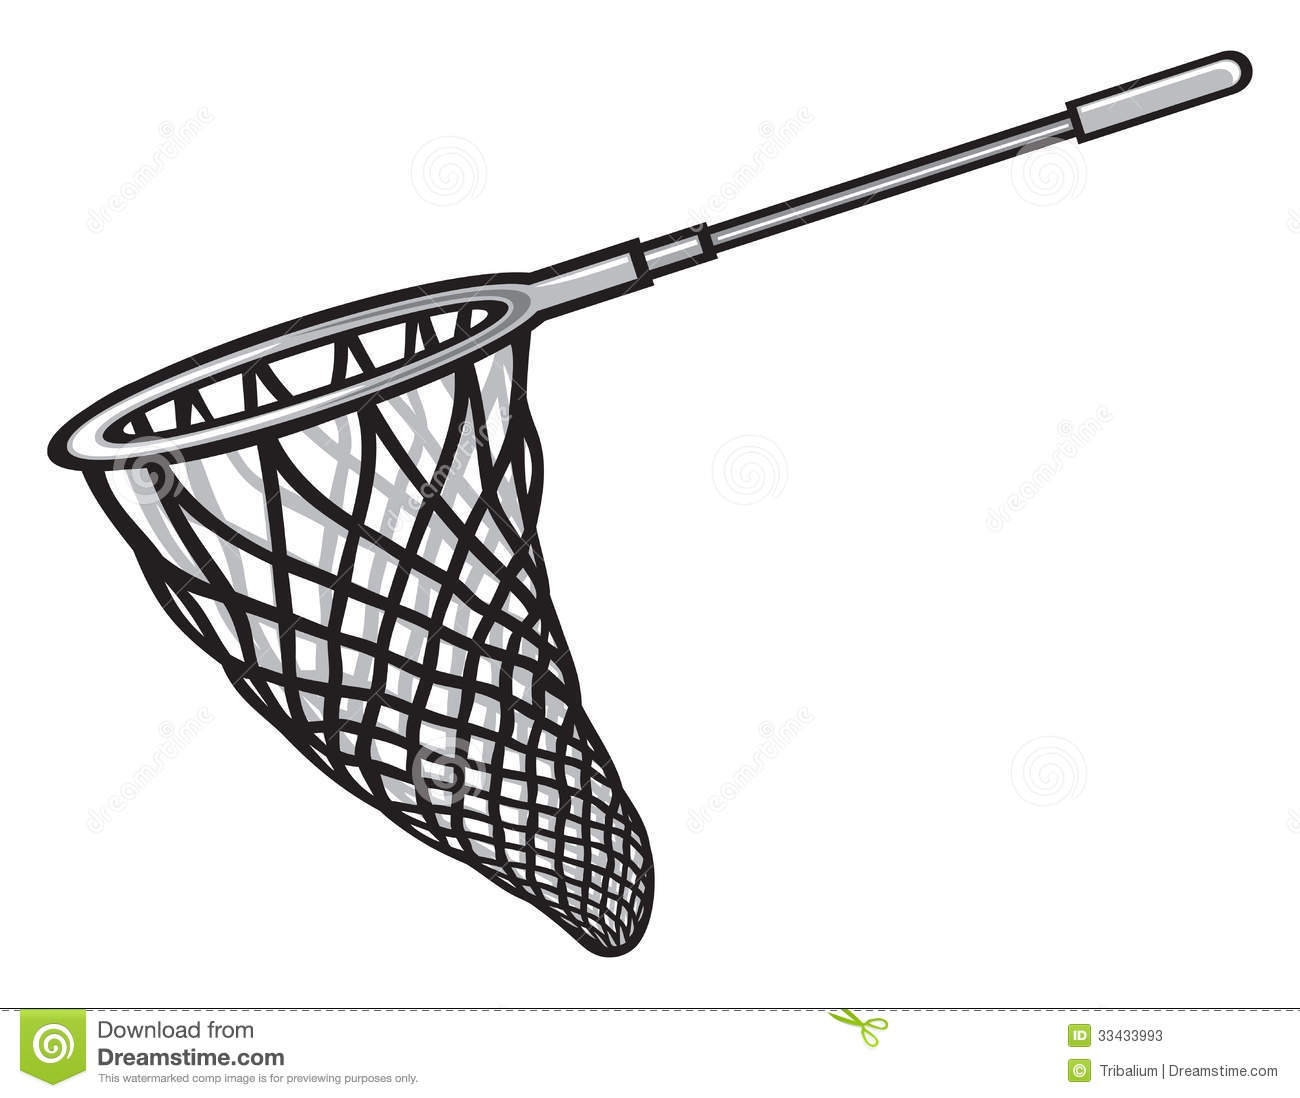 Butterfly net clipart png freeuse library Butterfly Net Illustration Butterfly Net #10186166 158 - Free Clipart png freeuse library